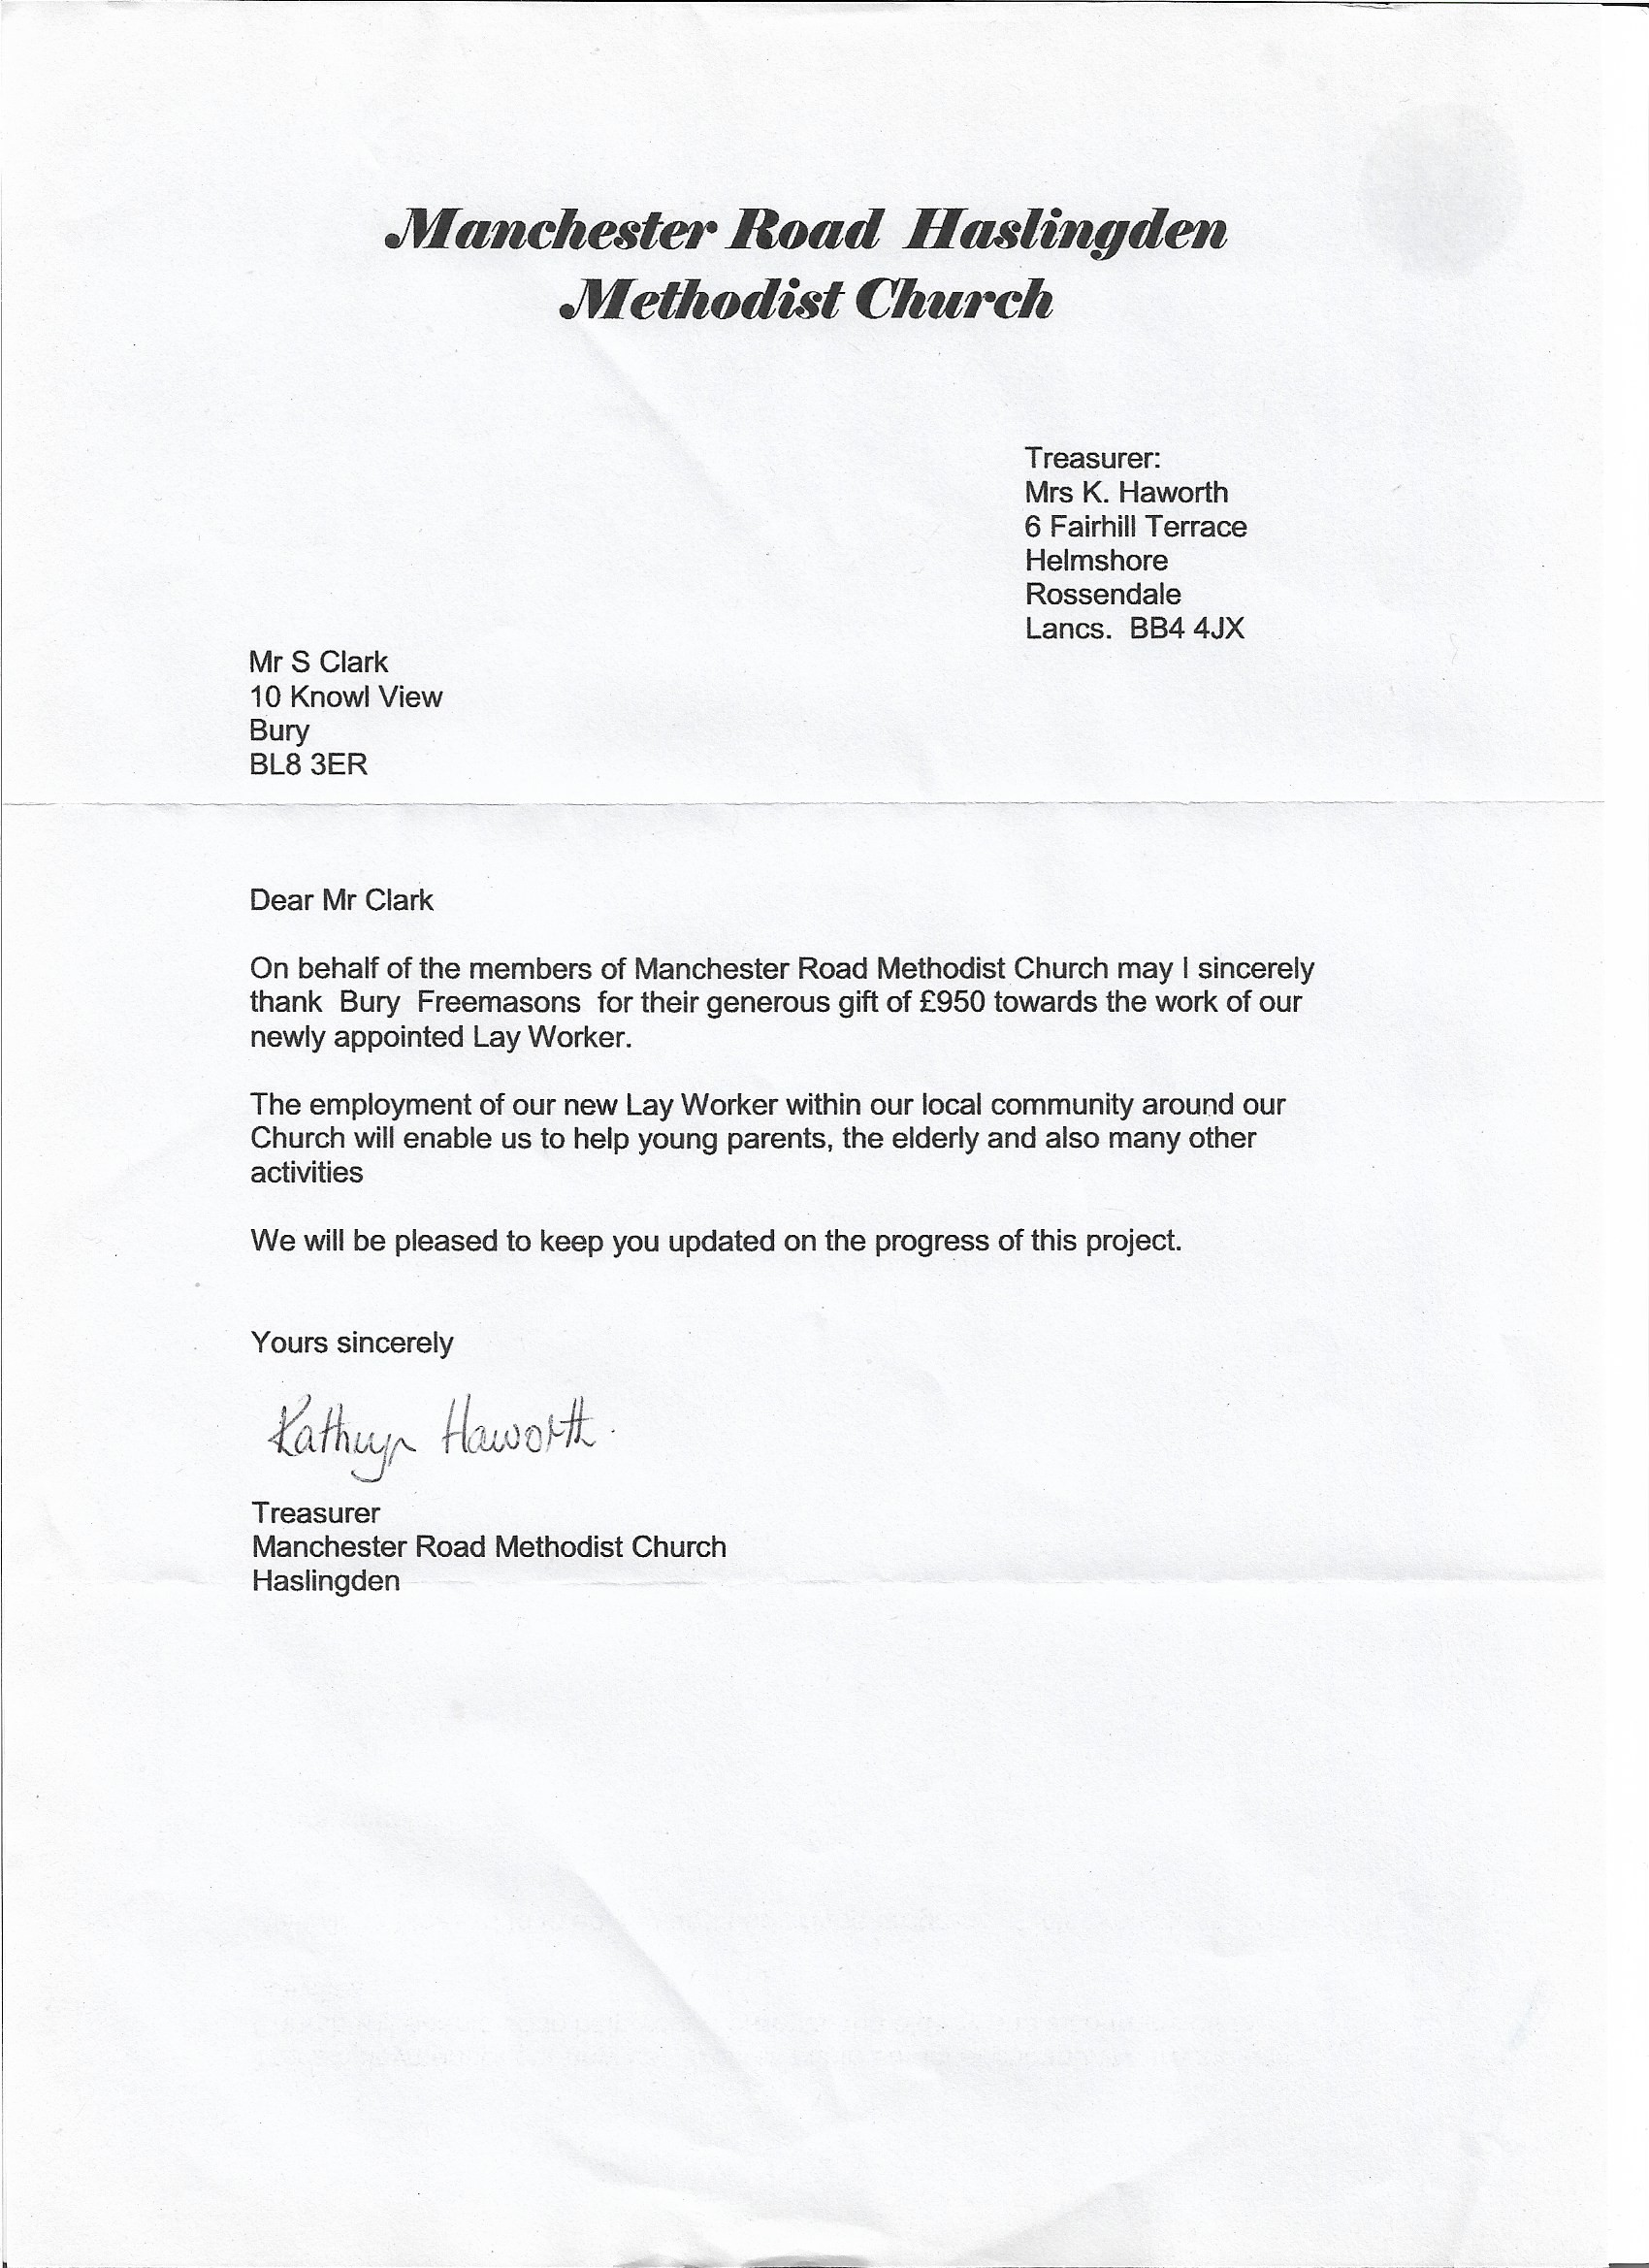 thank you letter from manchester road methodist church